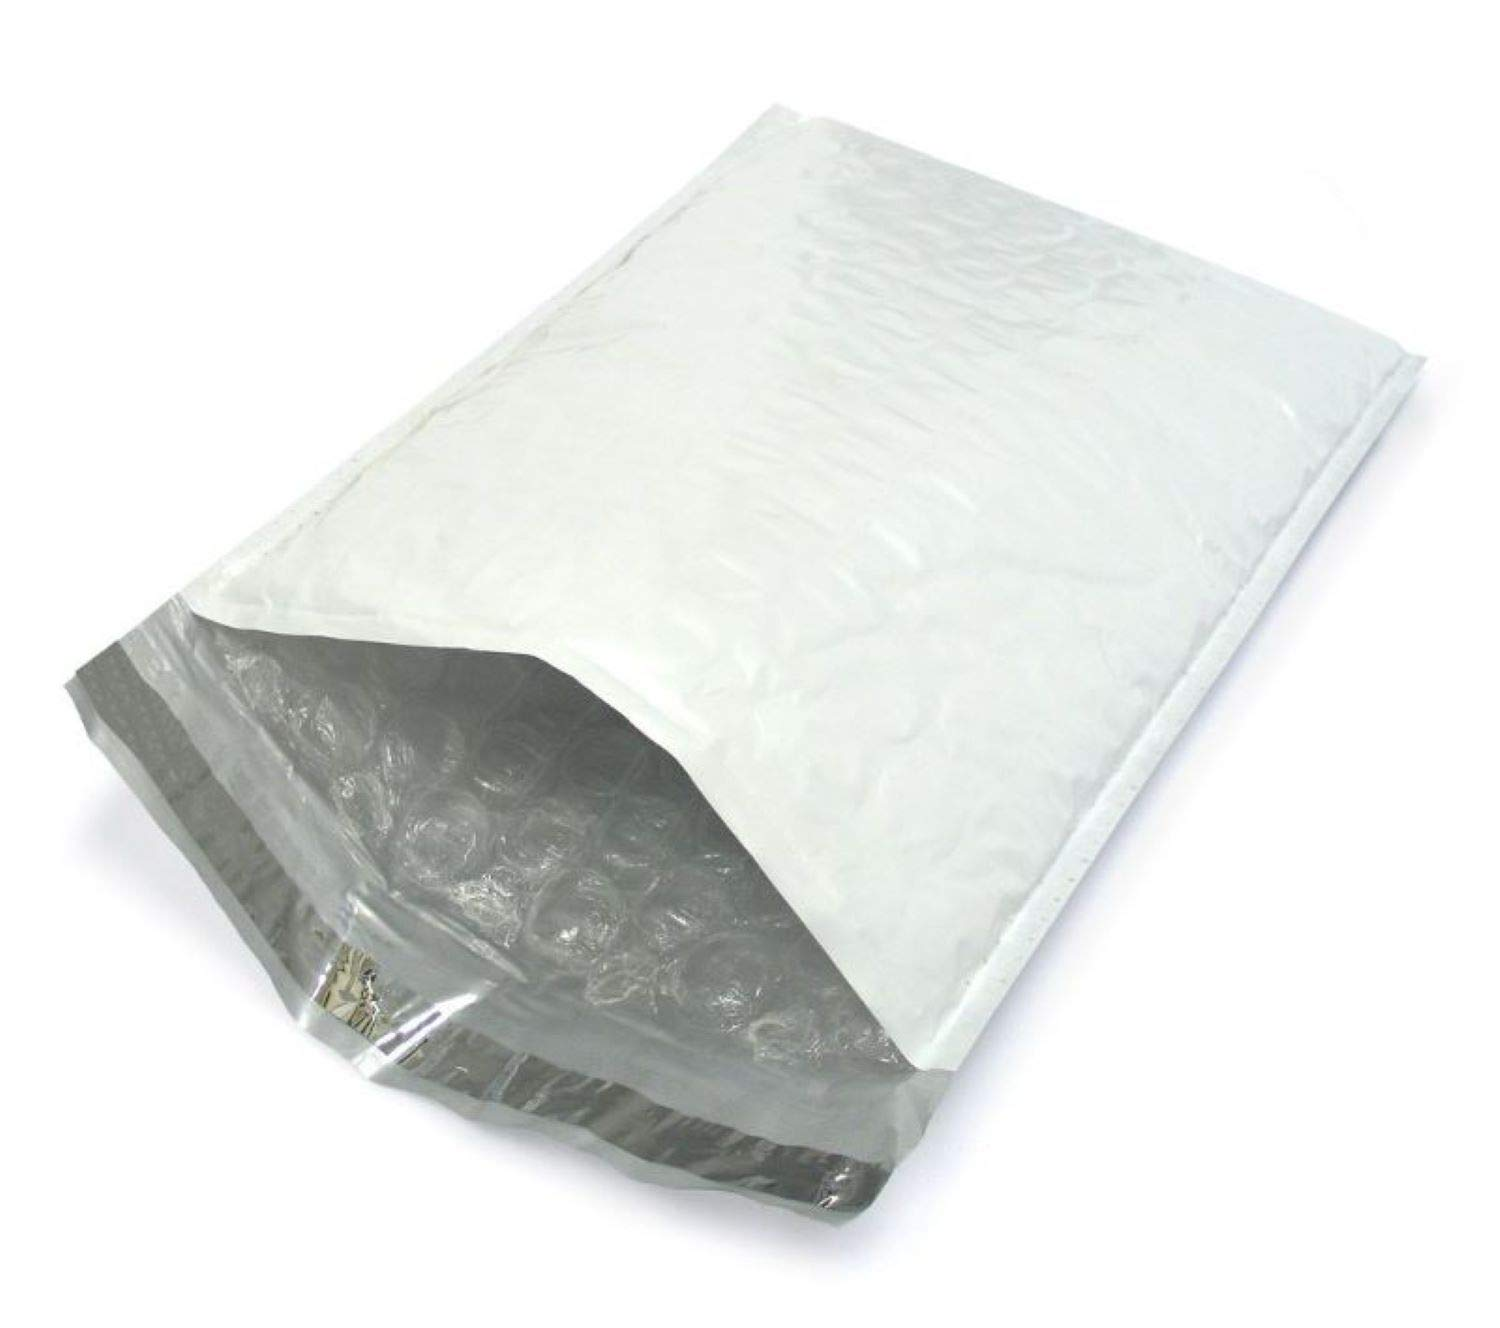 Padded Shipping Envelope Mailers Pack of 250 Secure Seal #0 6x10 Poly Bubble Mailers